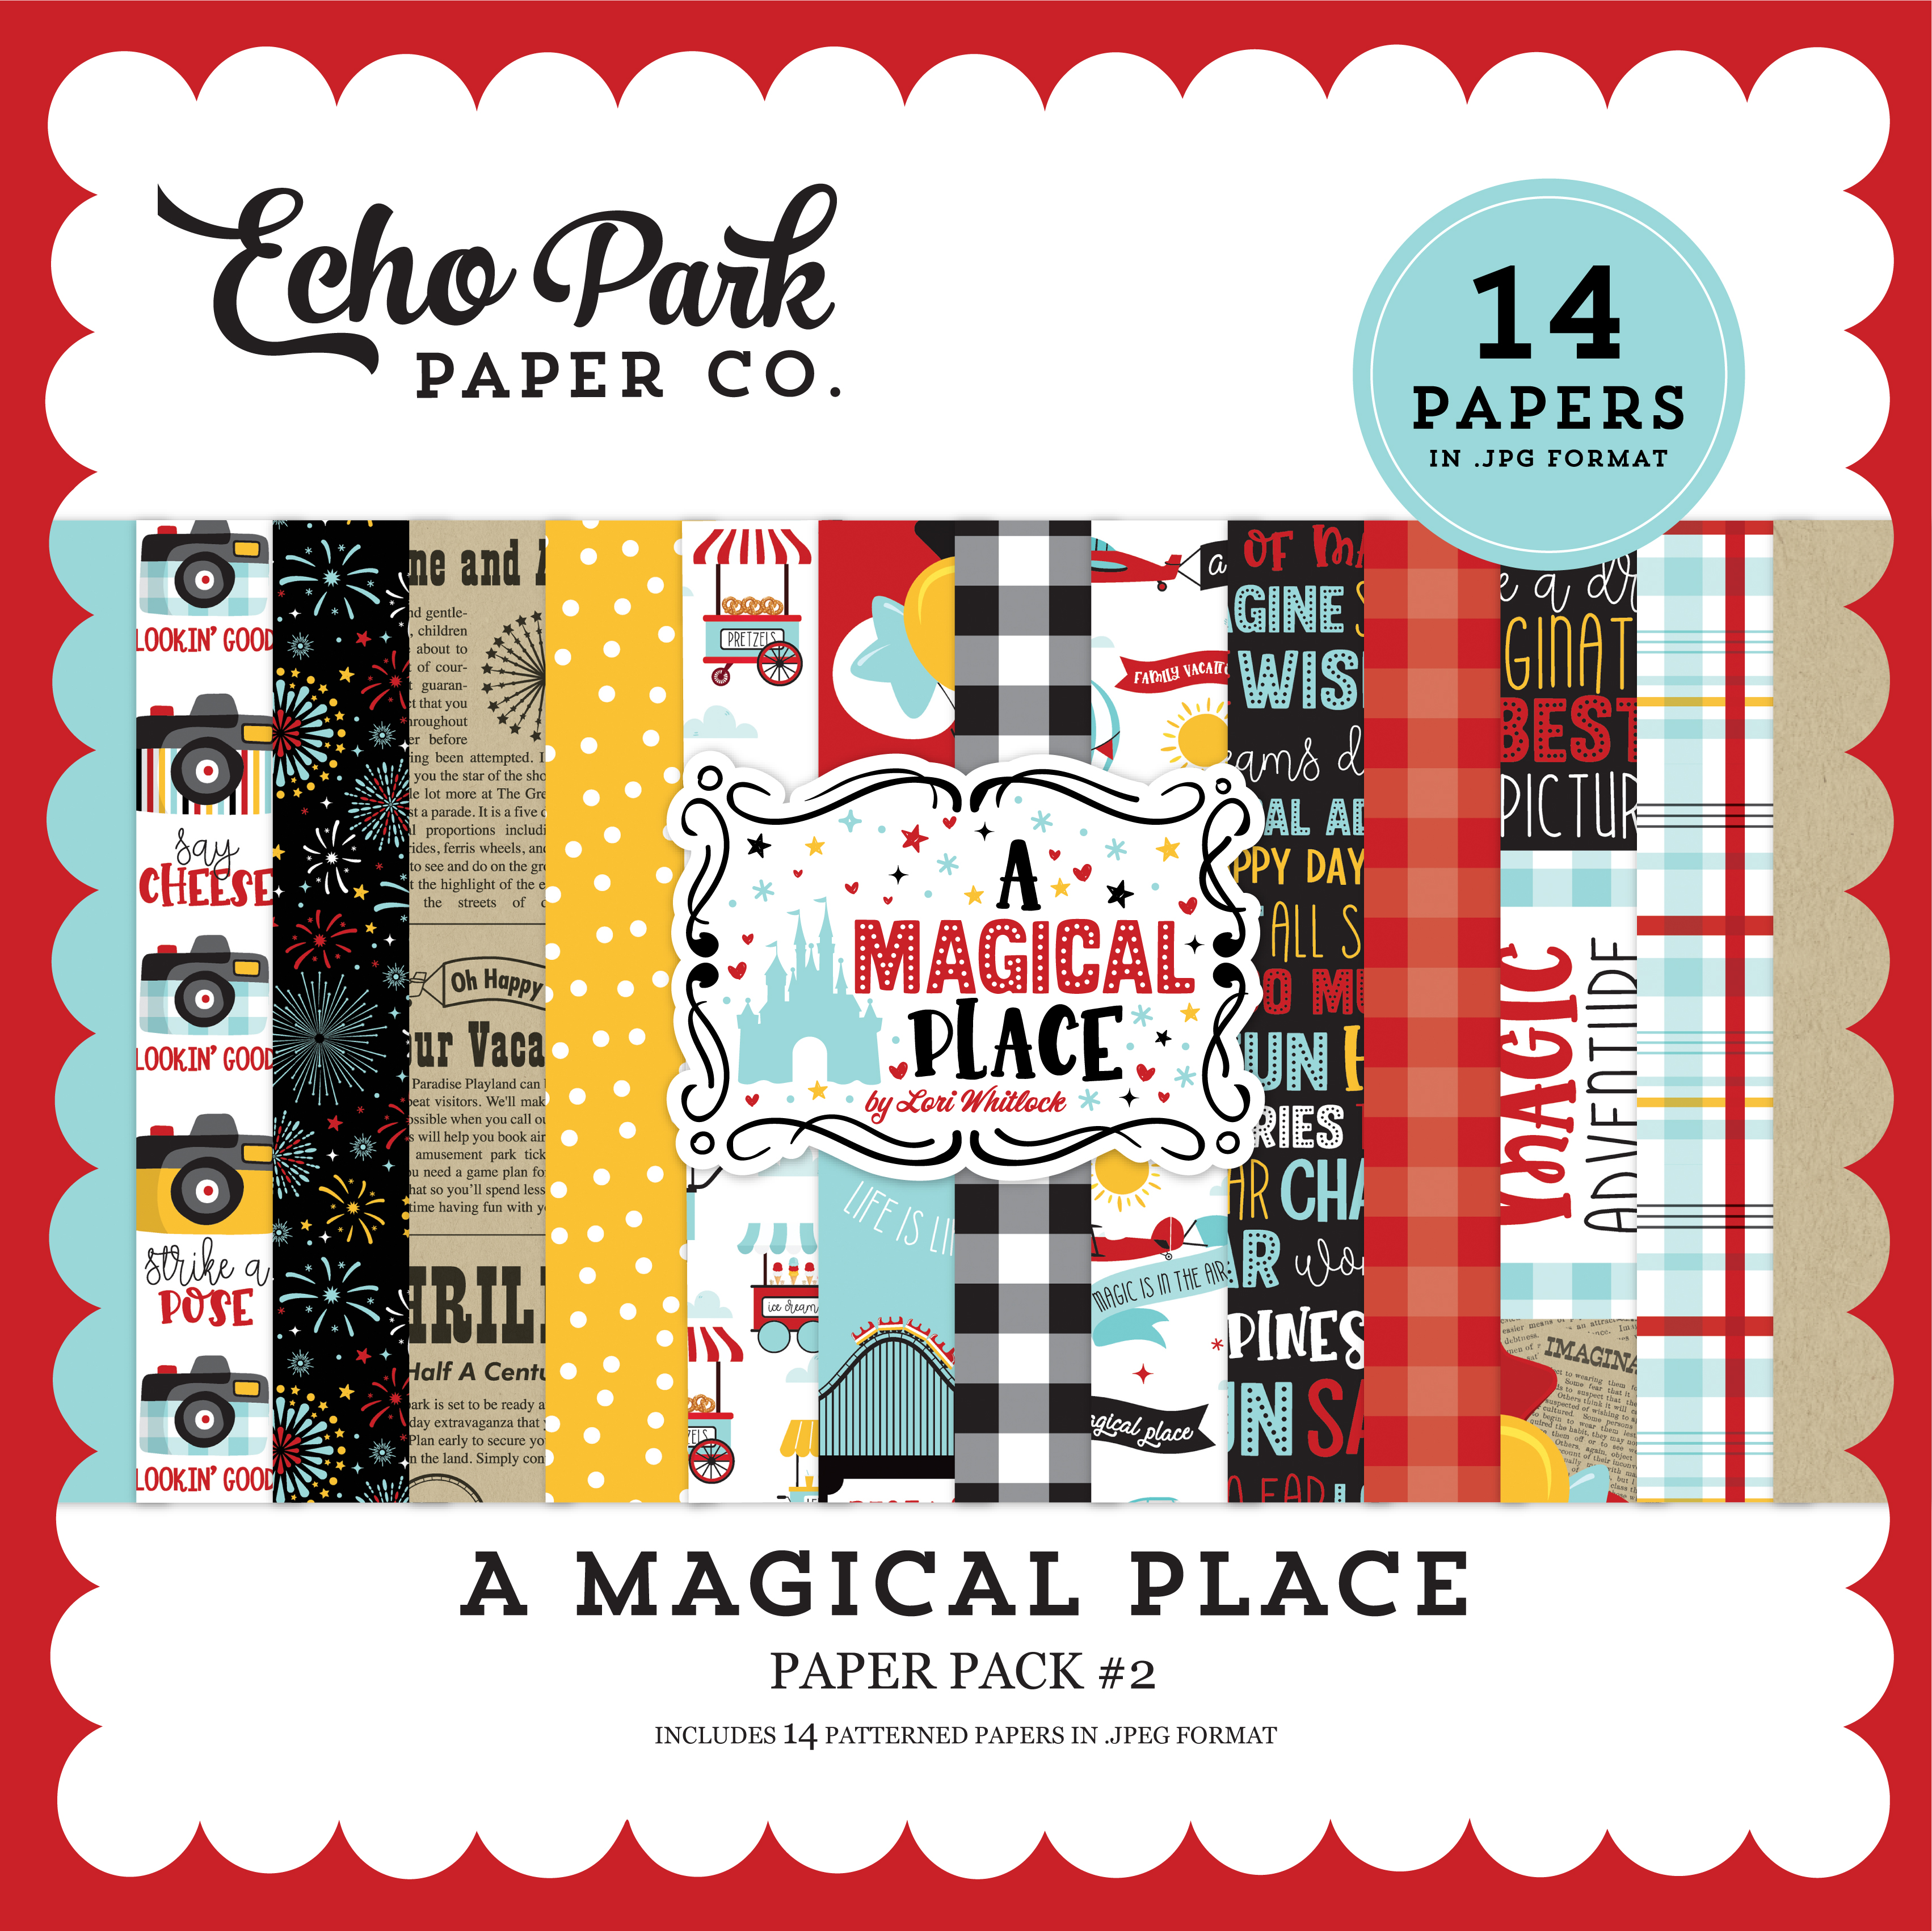 A Magical Place Paper Pack #2